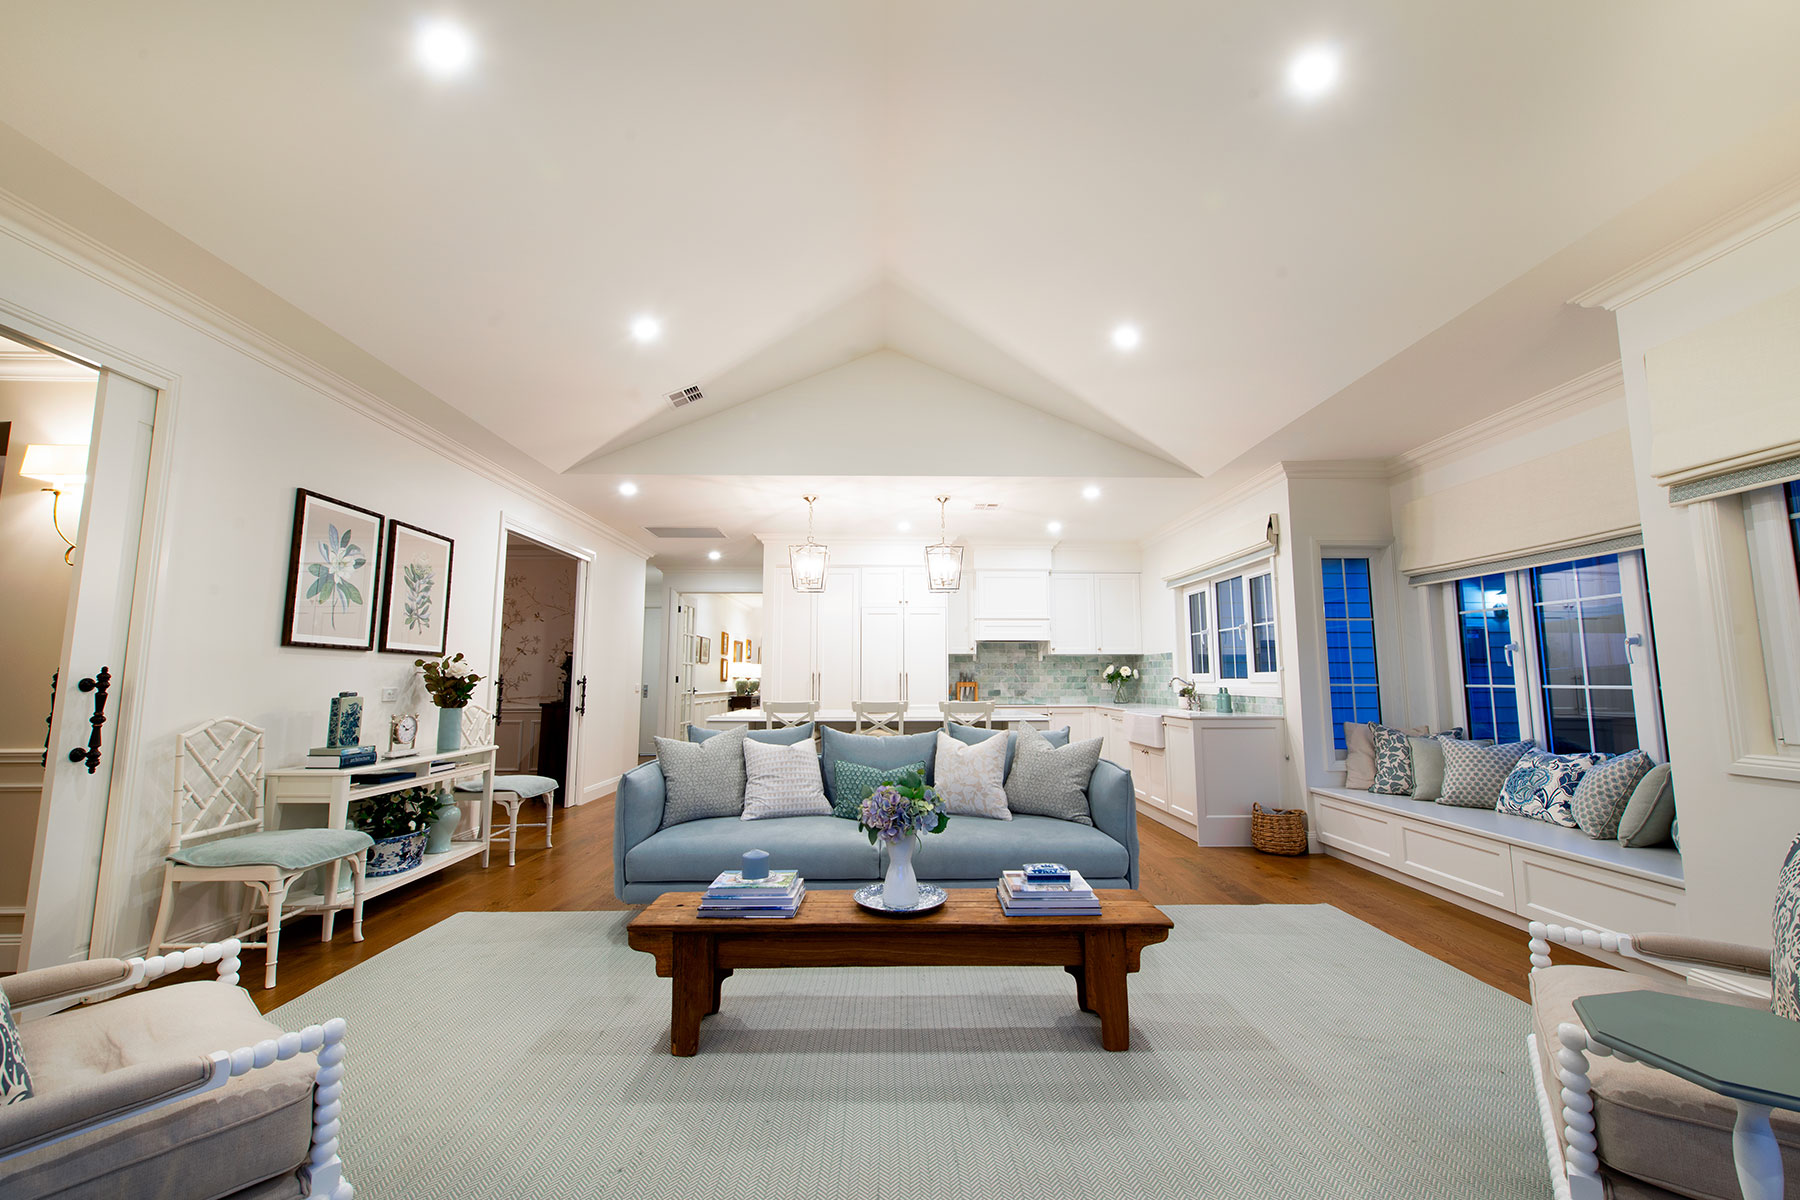 Timeless character-filled home gallery image